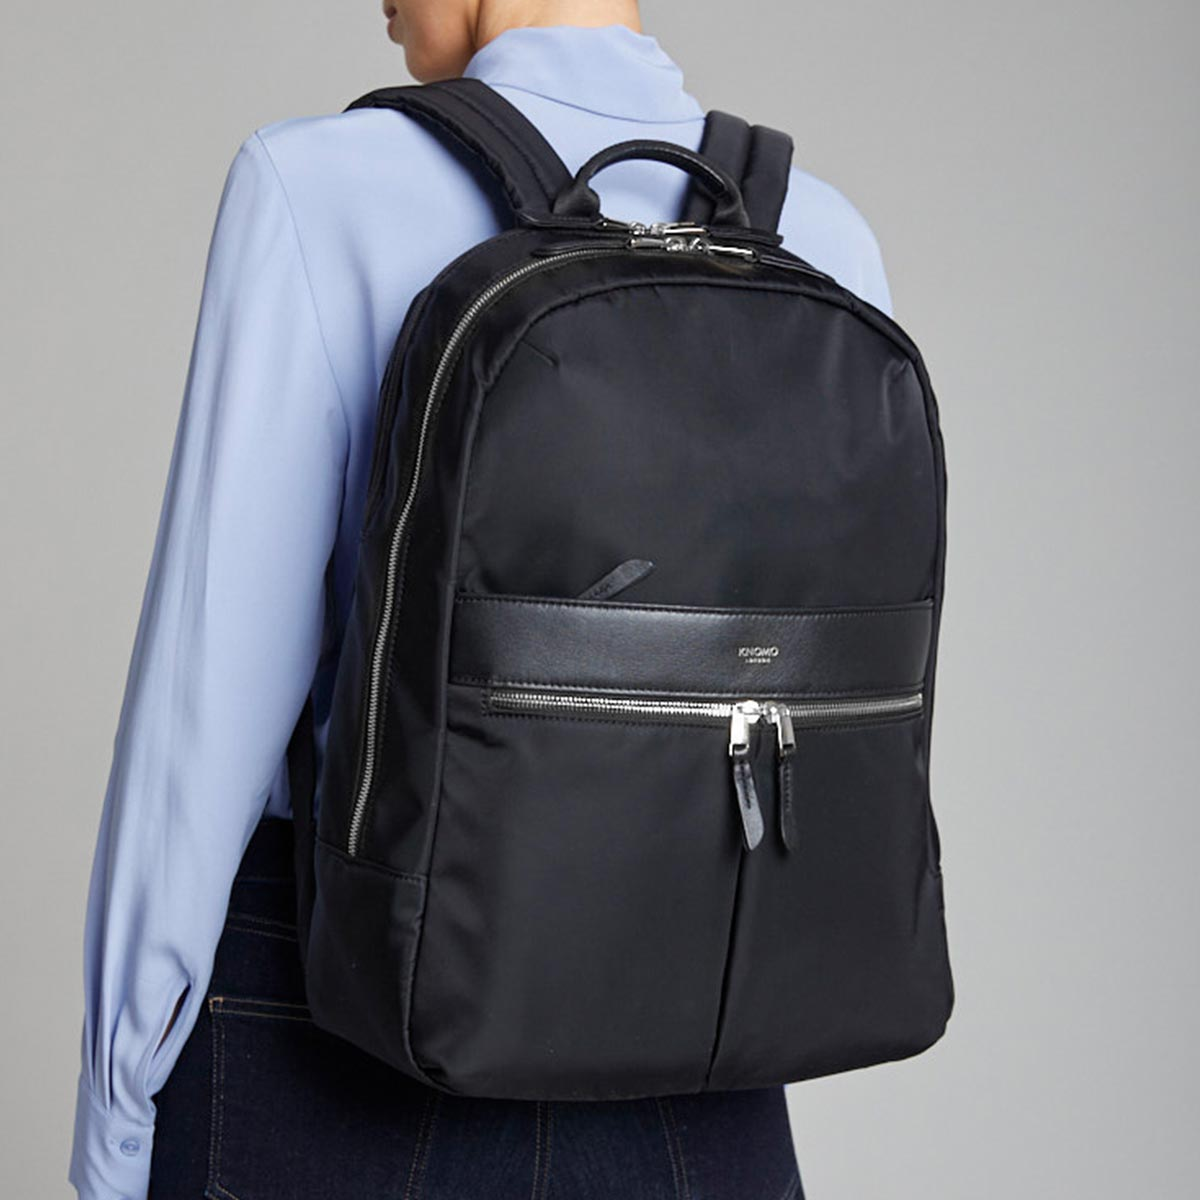 "KNOMO Beaufort Laptop Backpack Female Model Wearing 15.6"" -  Black 